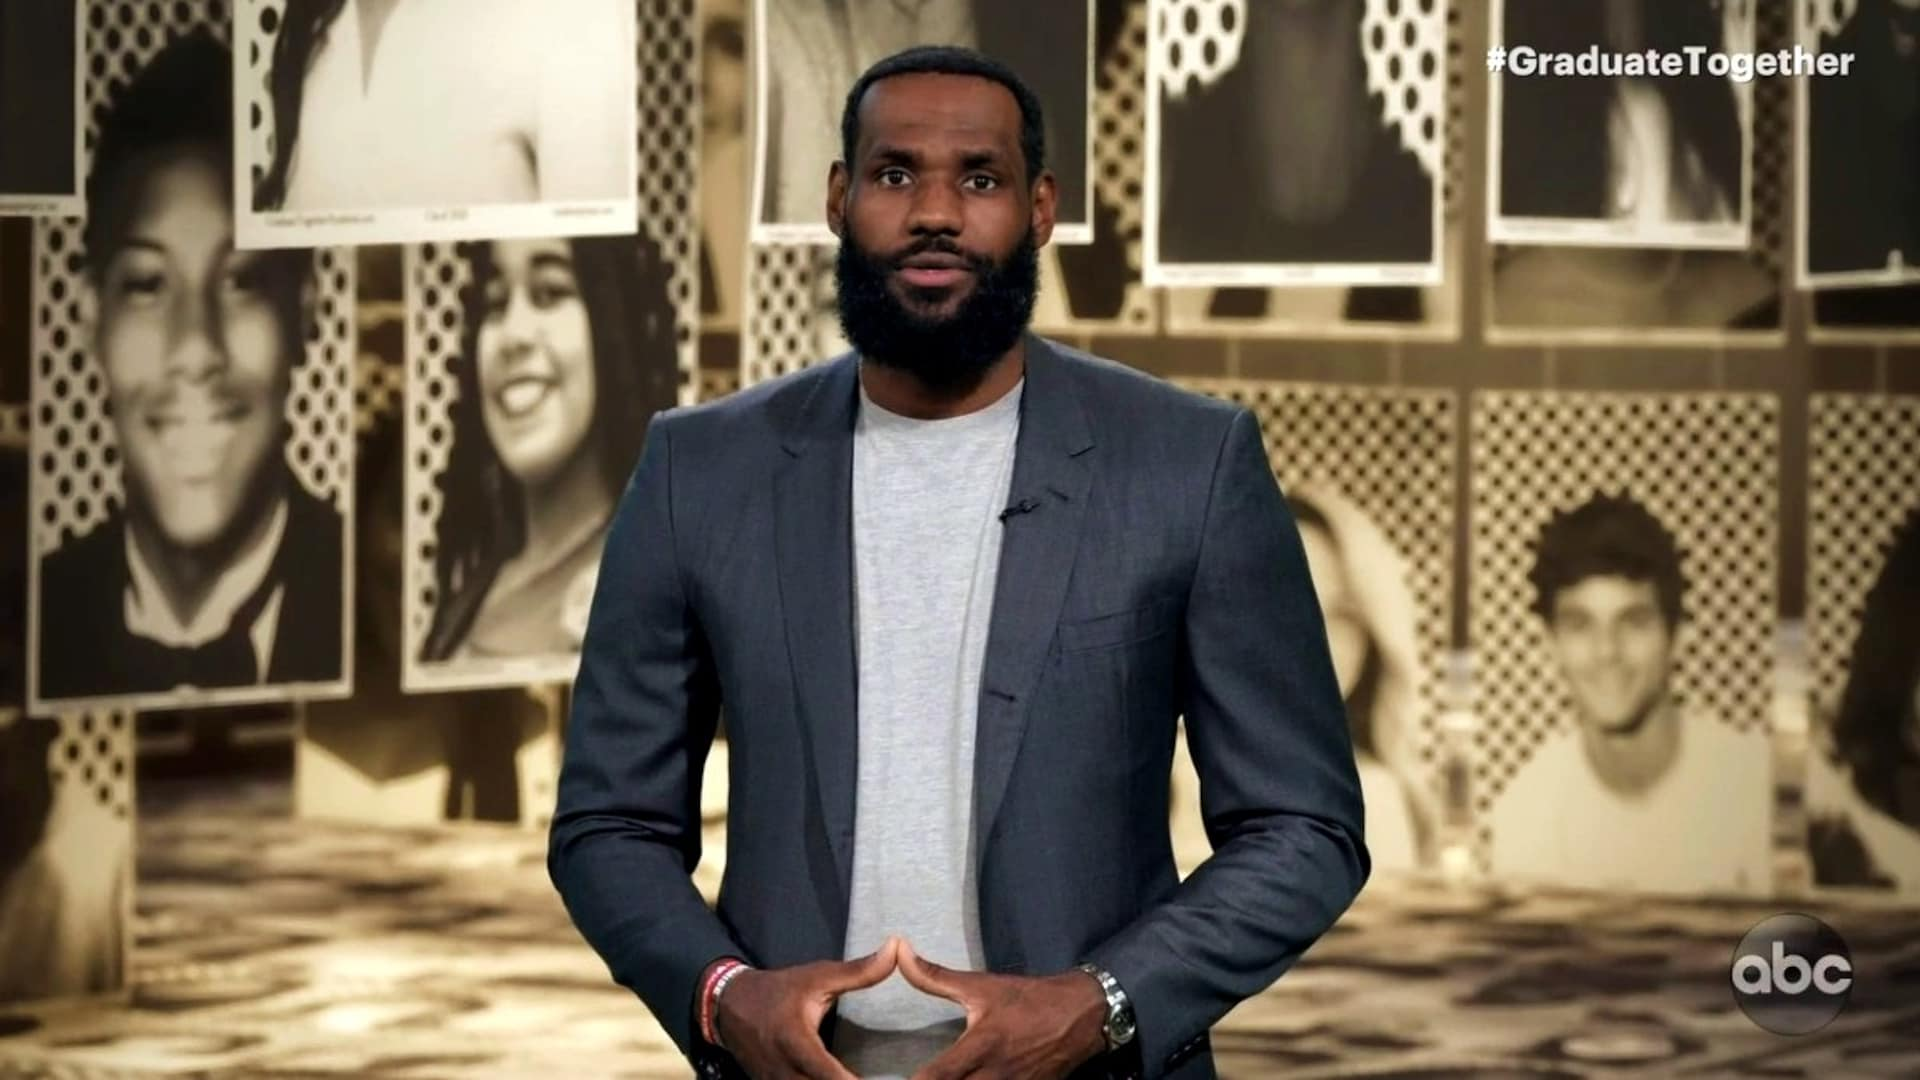 LeBron James hosts 'Graduate Together' event for class of 2020